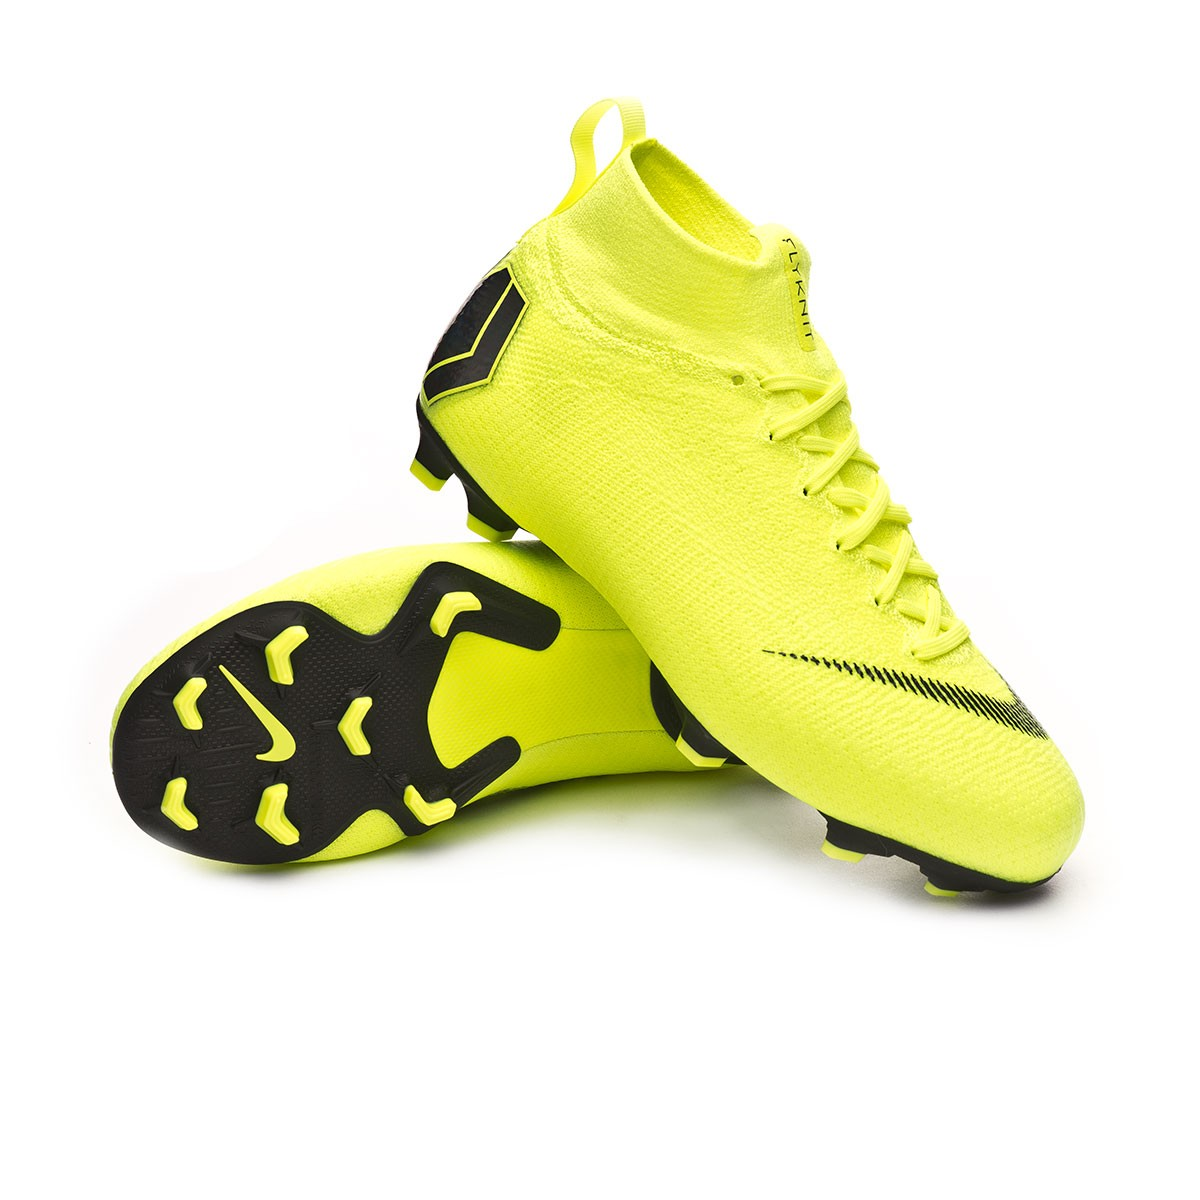 9874d623599 Bota Mercurial Superfly VI Elite FG Niño Volt-Black